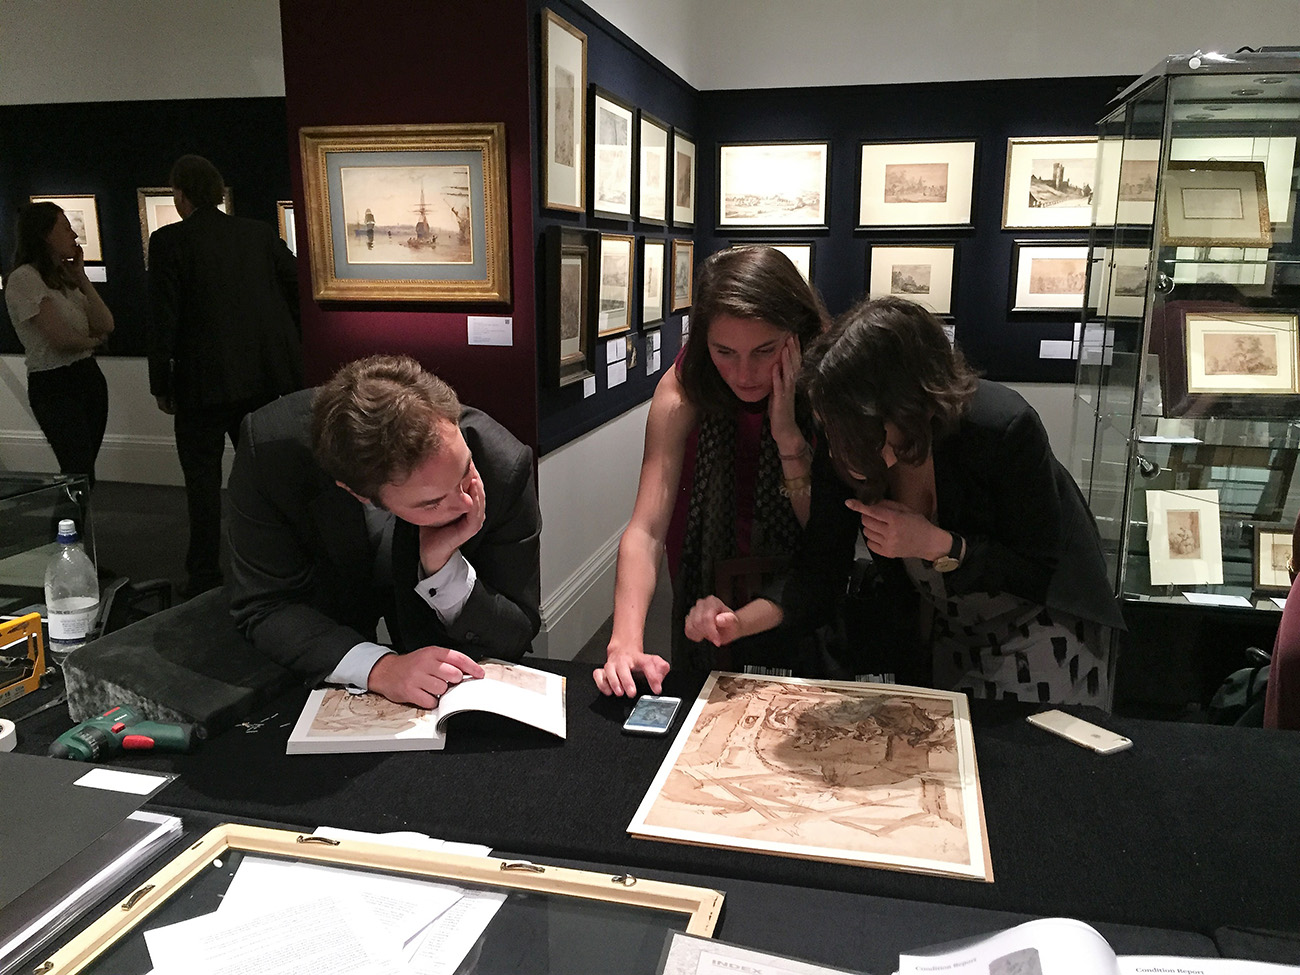 Two seminar participants take a closer look at a drawing outside of its frame with Alexander Faber, during the Old Master Drawings sale preview at Sotheby's London.